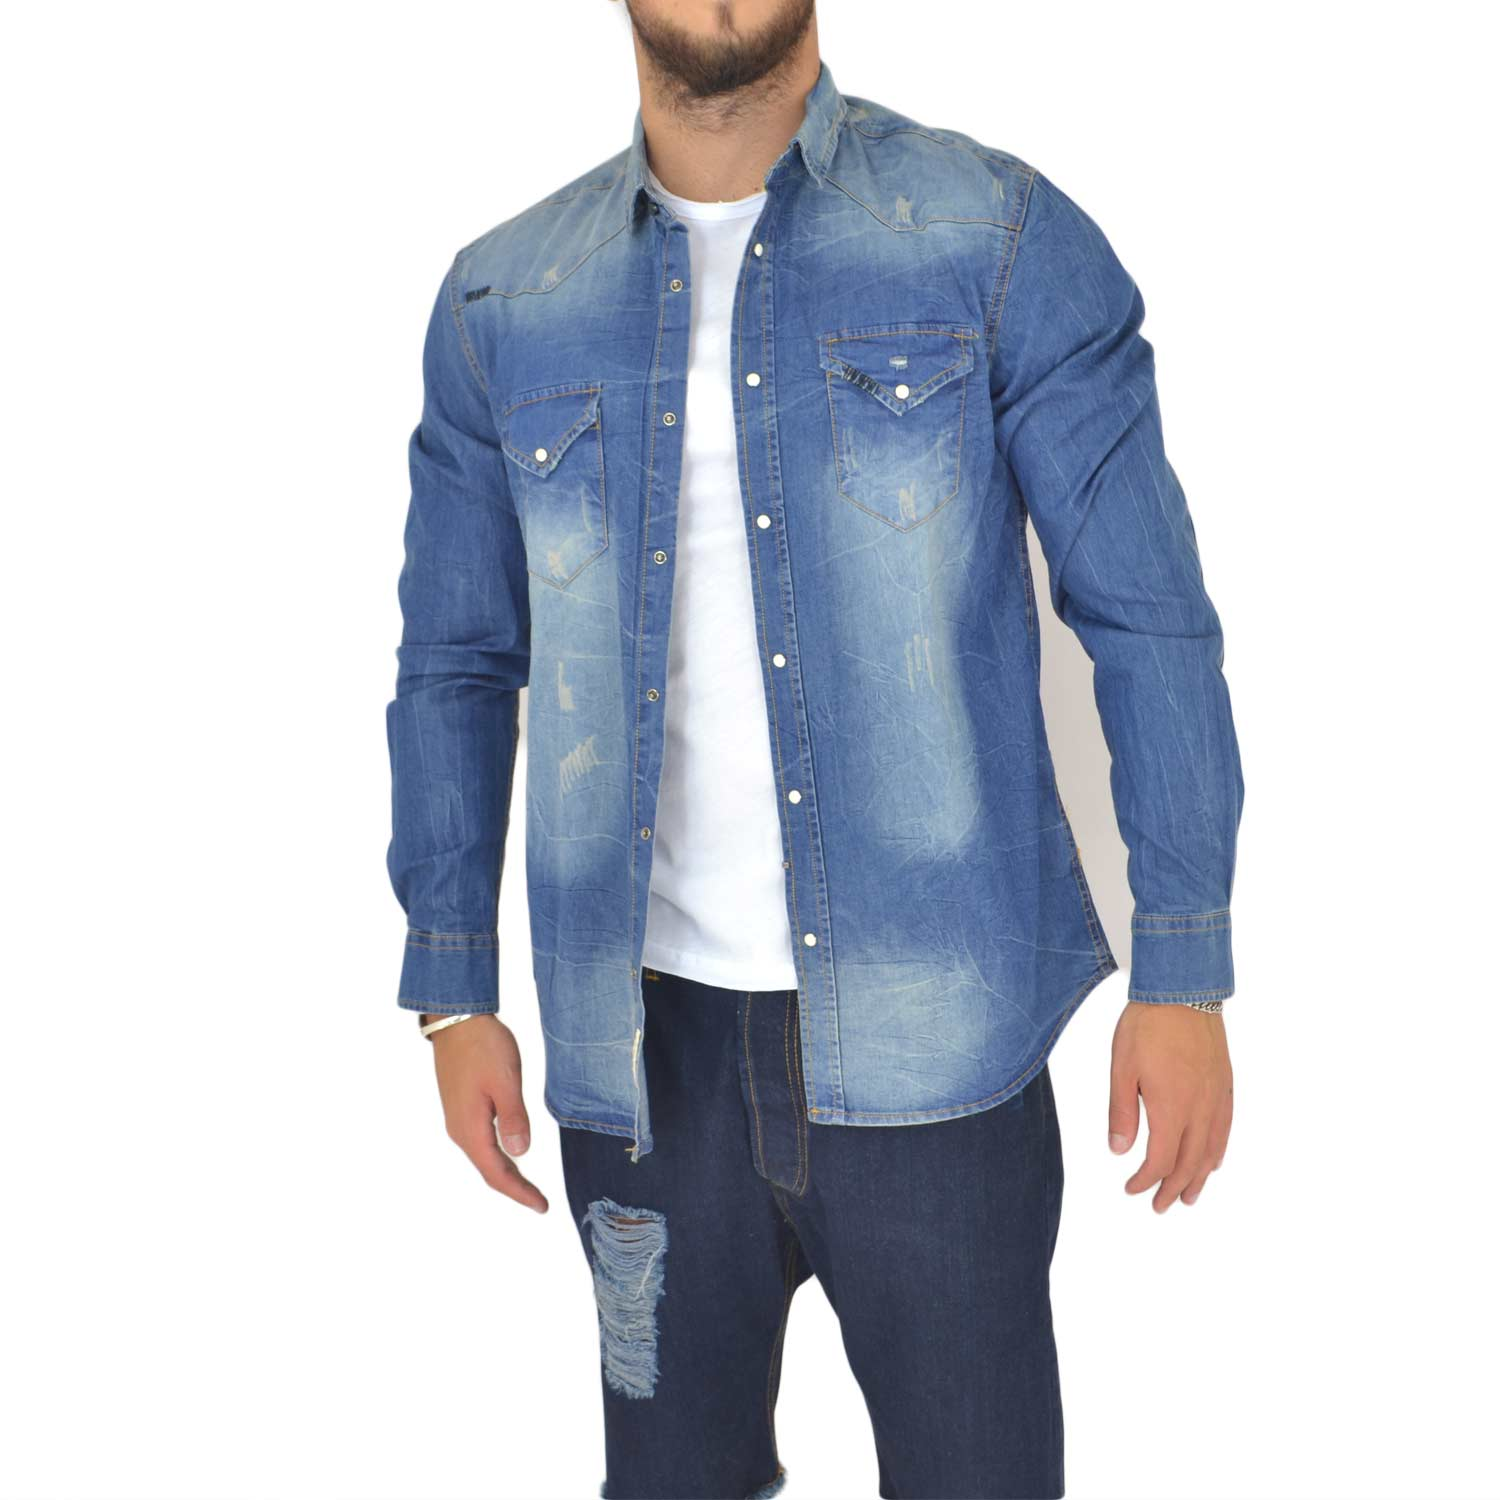 CAMICIA UOMO MAN JEANS SCURO DENIM COLLO RIGIDO MANICA LUNGA BASIC CON BOTTONI PARTICOLARI.